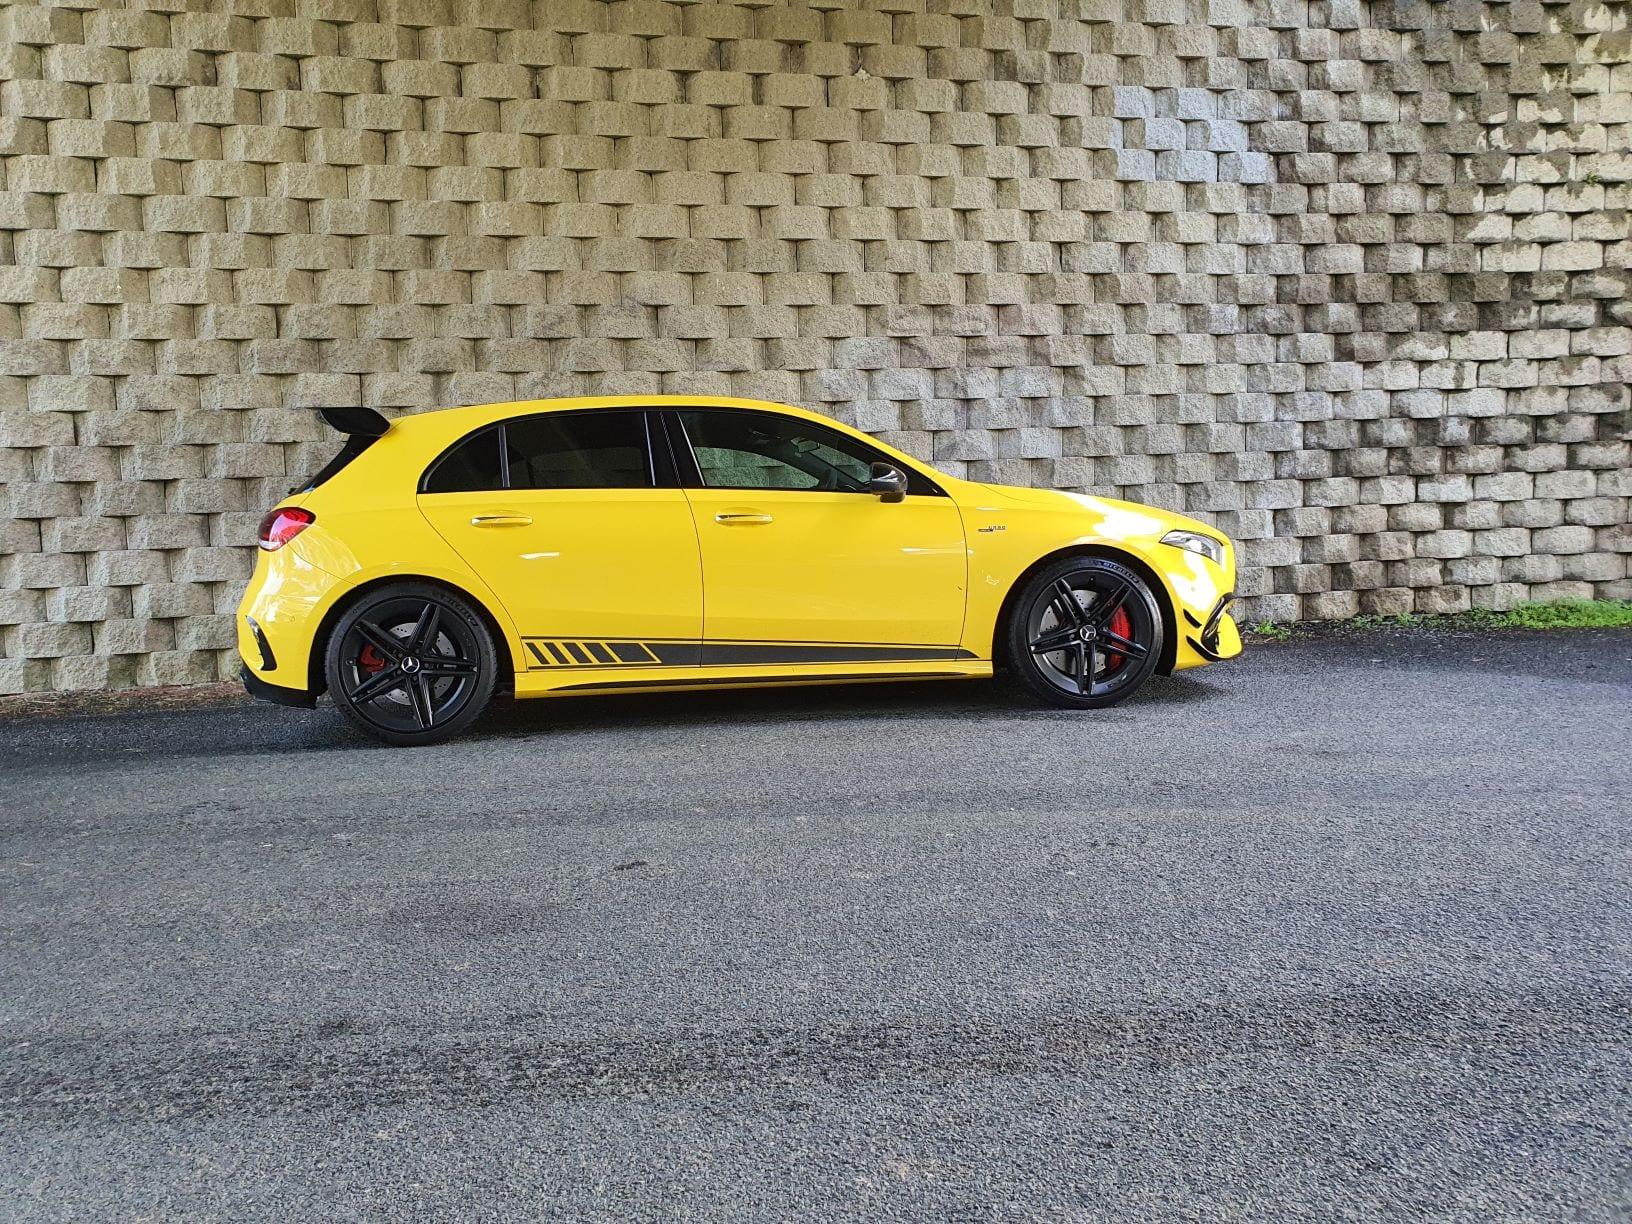 A side view of the Mercedes A45 S AMG edition 1 in yellow